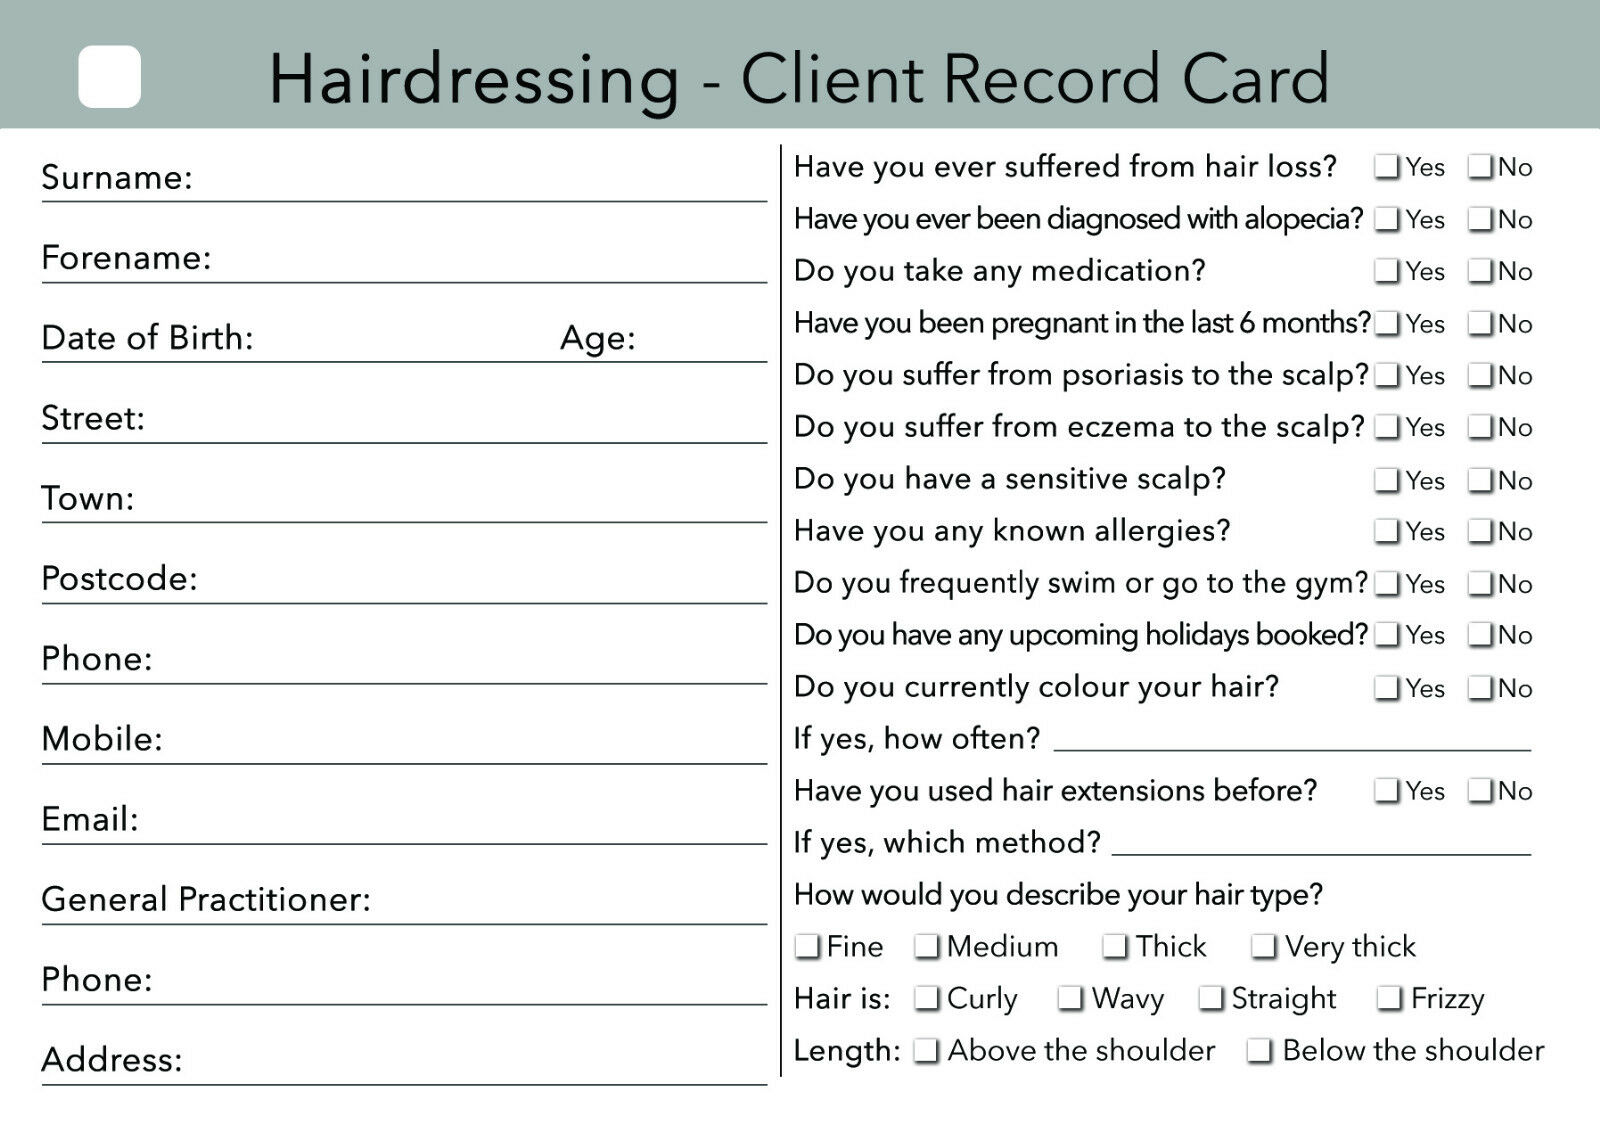 Hairdresser Client Card Client Record Card